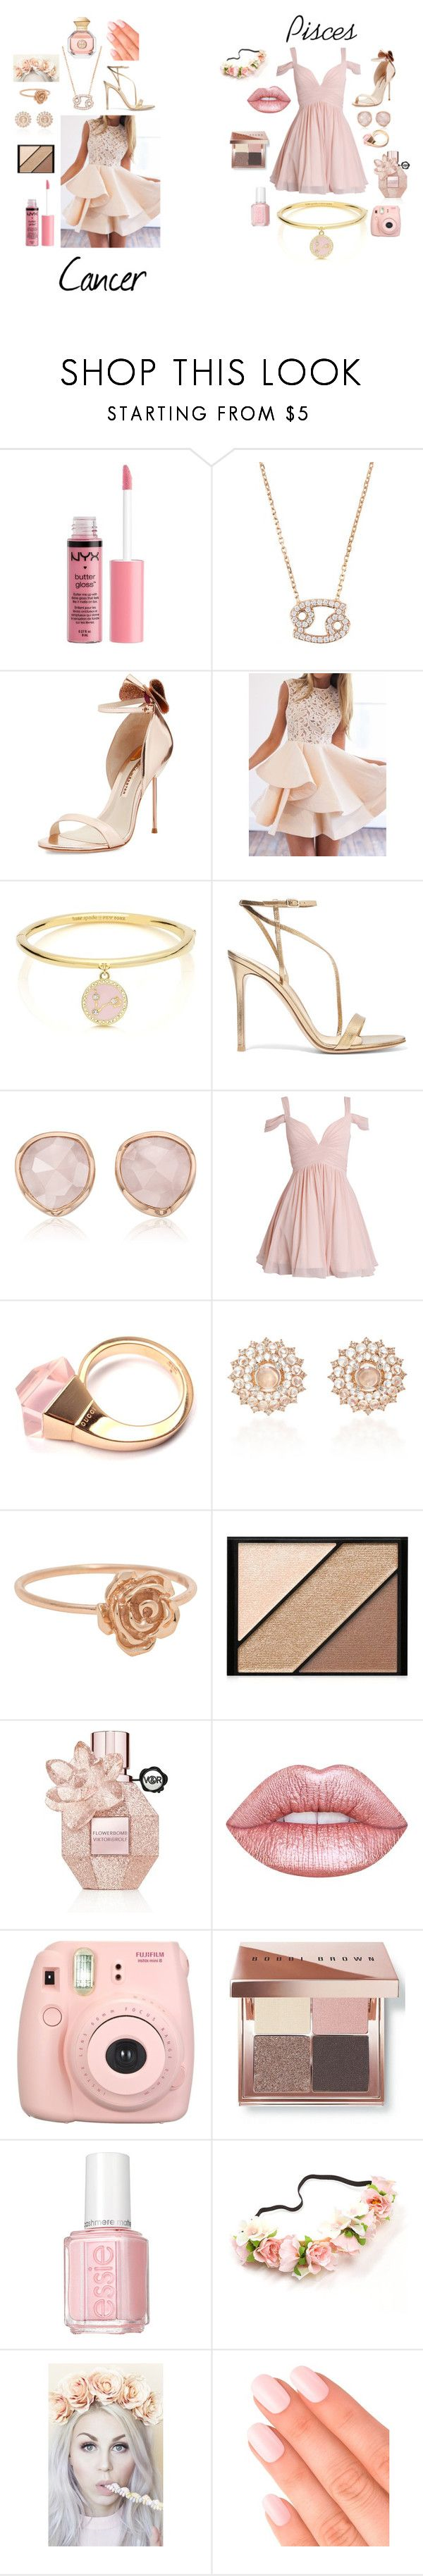 """Pisces and Cancer Prom"" by starry-eyed0310 ❤ liked on Polyvore featuring Charlotte Russe, Latelita, Sophia Webster, Kate Spade, Gianvito Rossi, Monica Vinader, Gucci, Nam Cho, Elizabeth Arden and Viktor & Rolf"